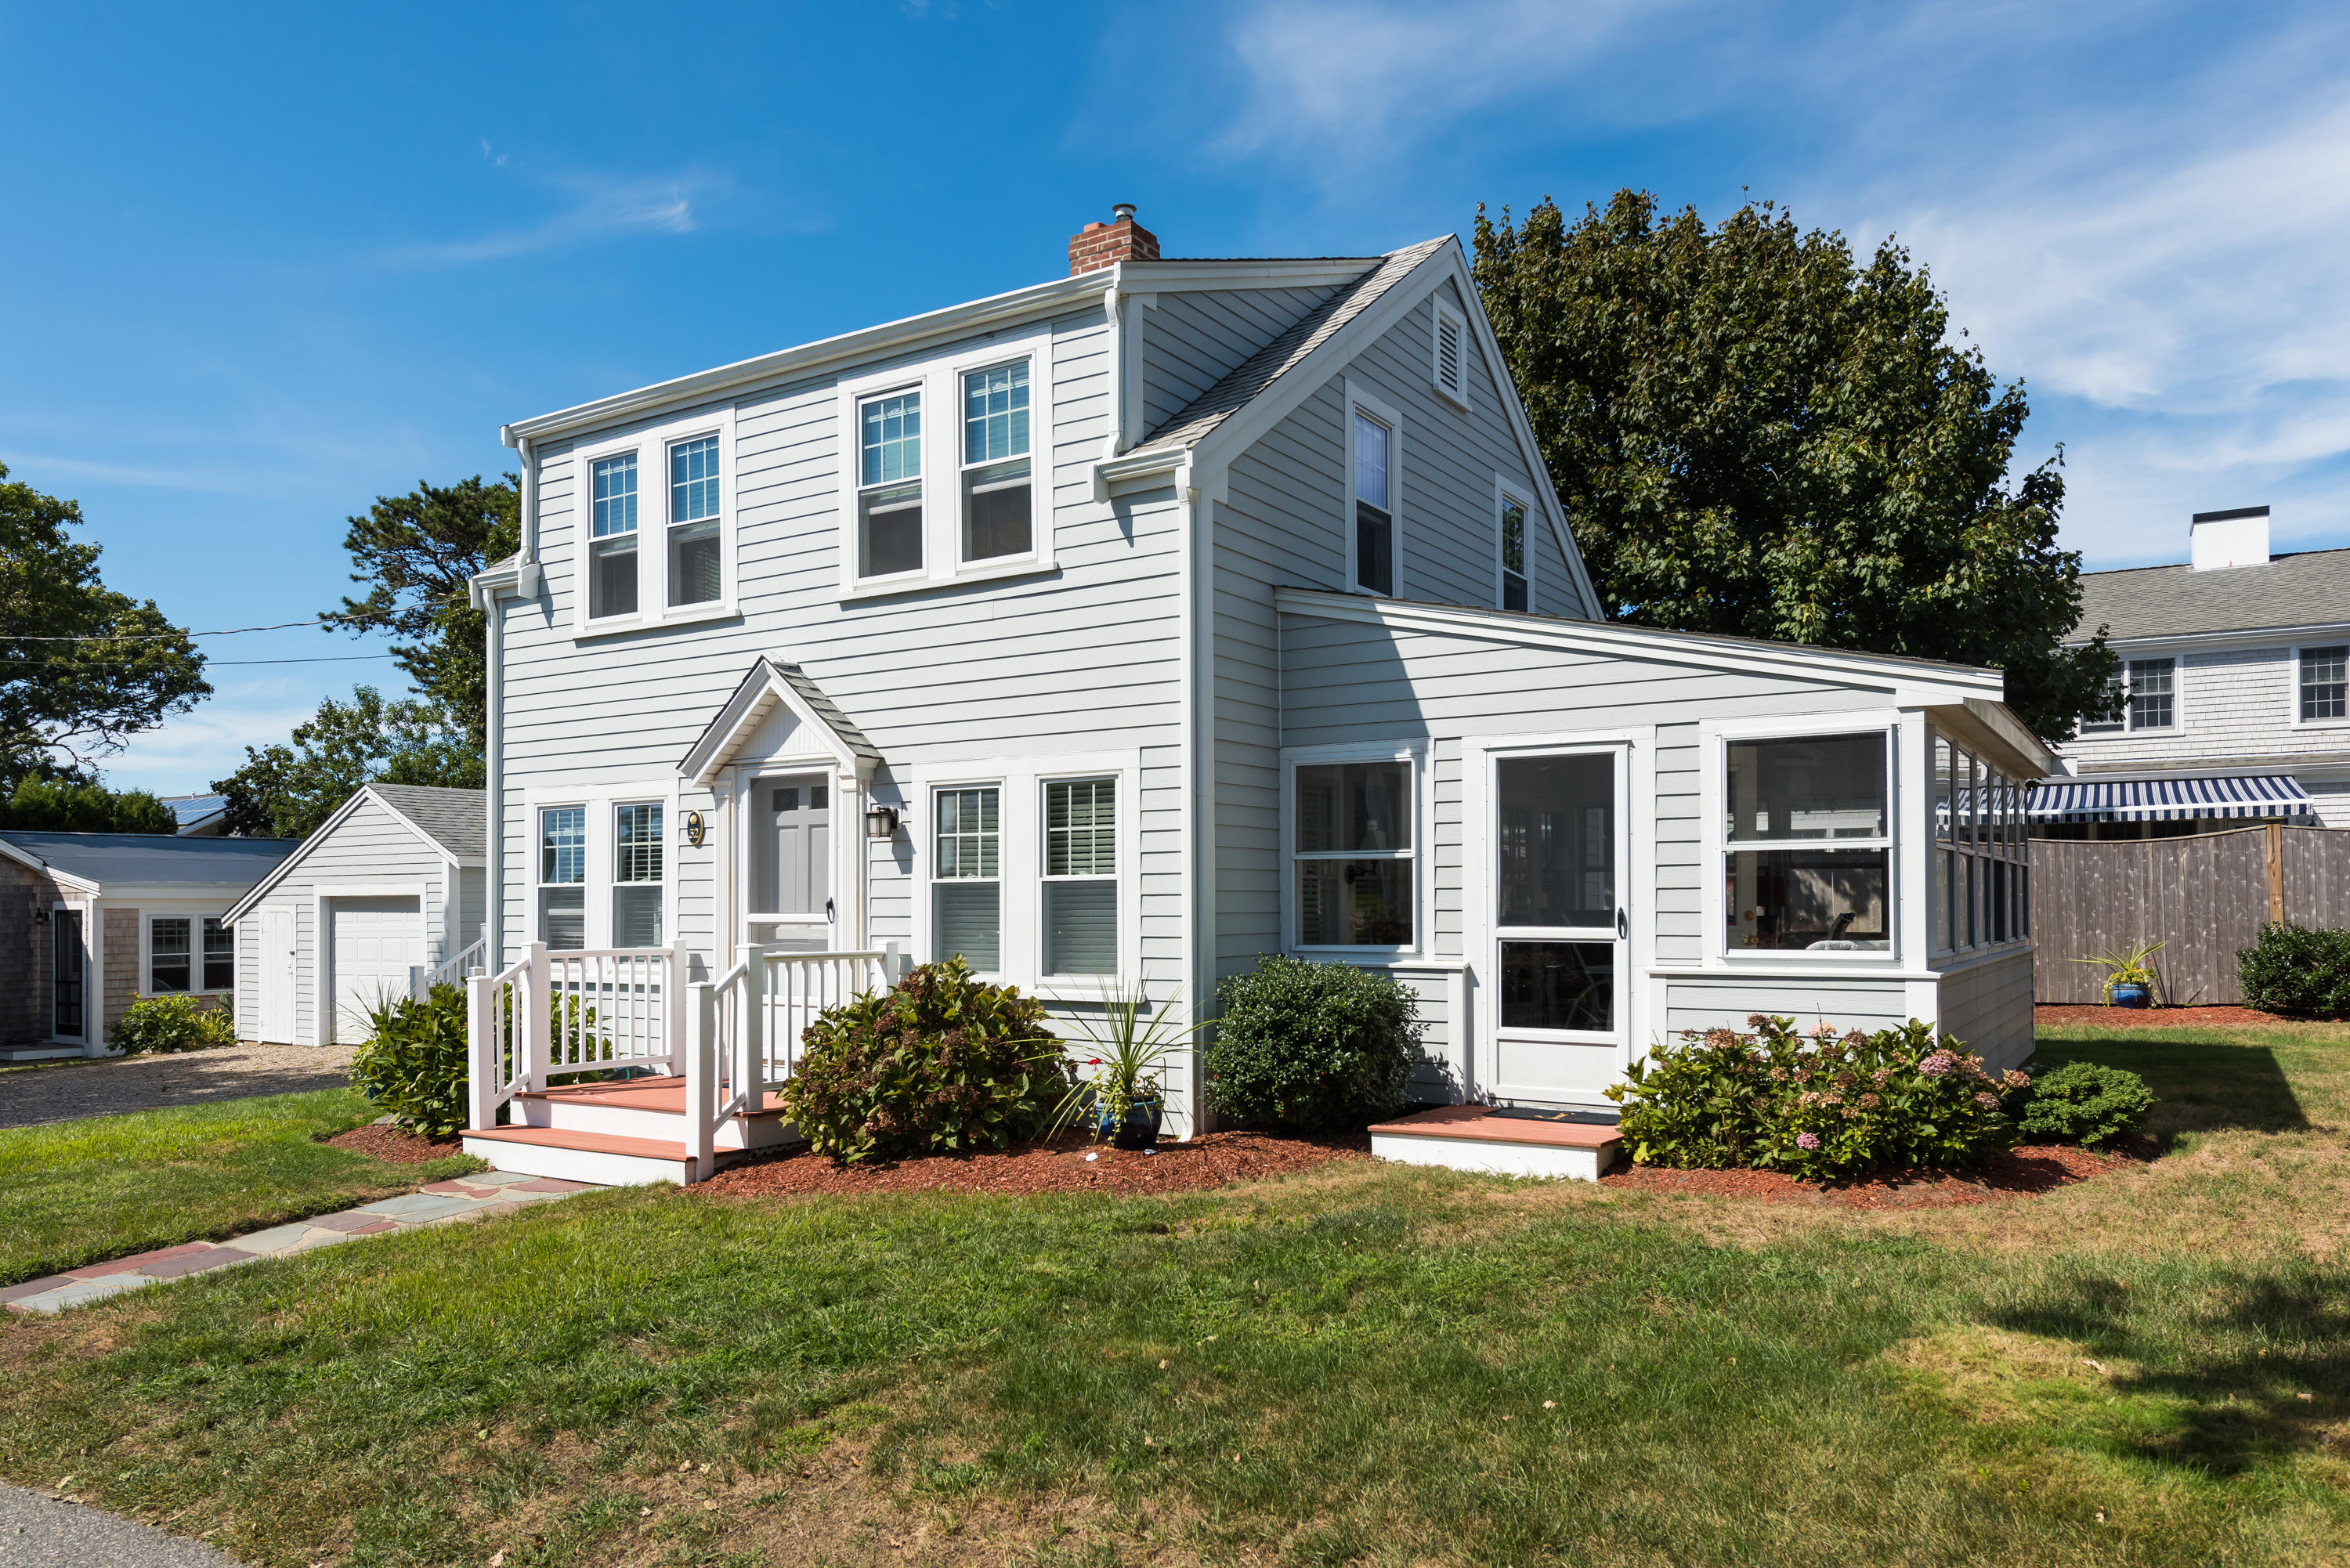 32 Harbor View Road, Harwich Port MA, 02646 details